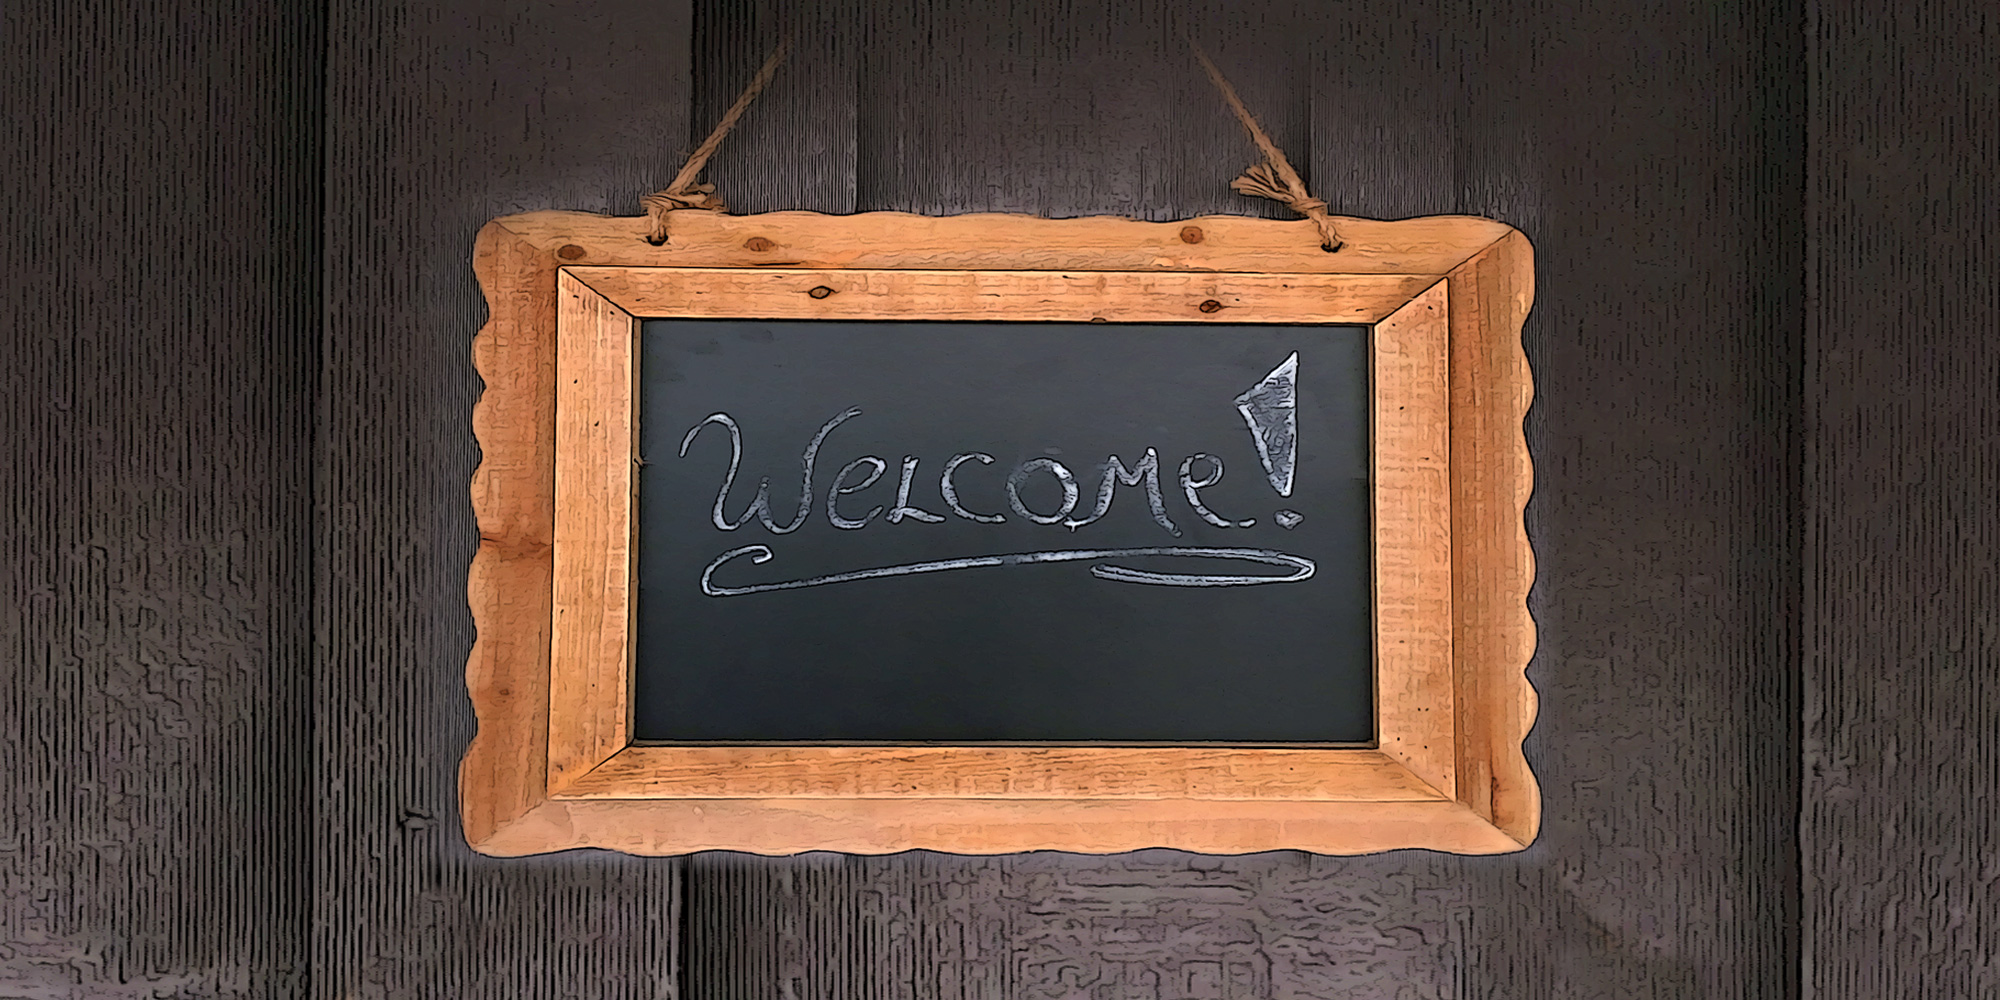 WelcomeSign-02